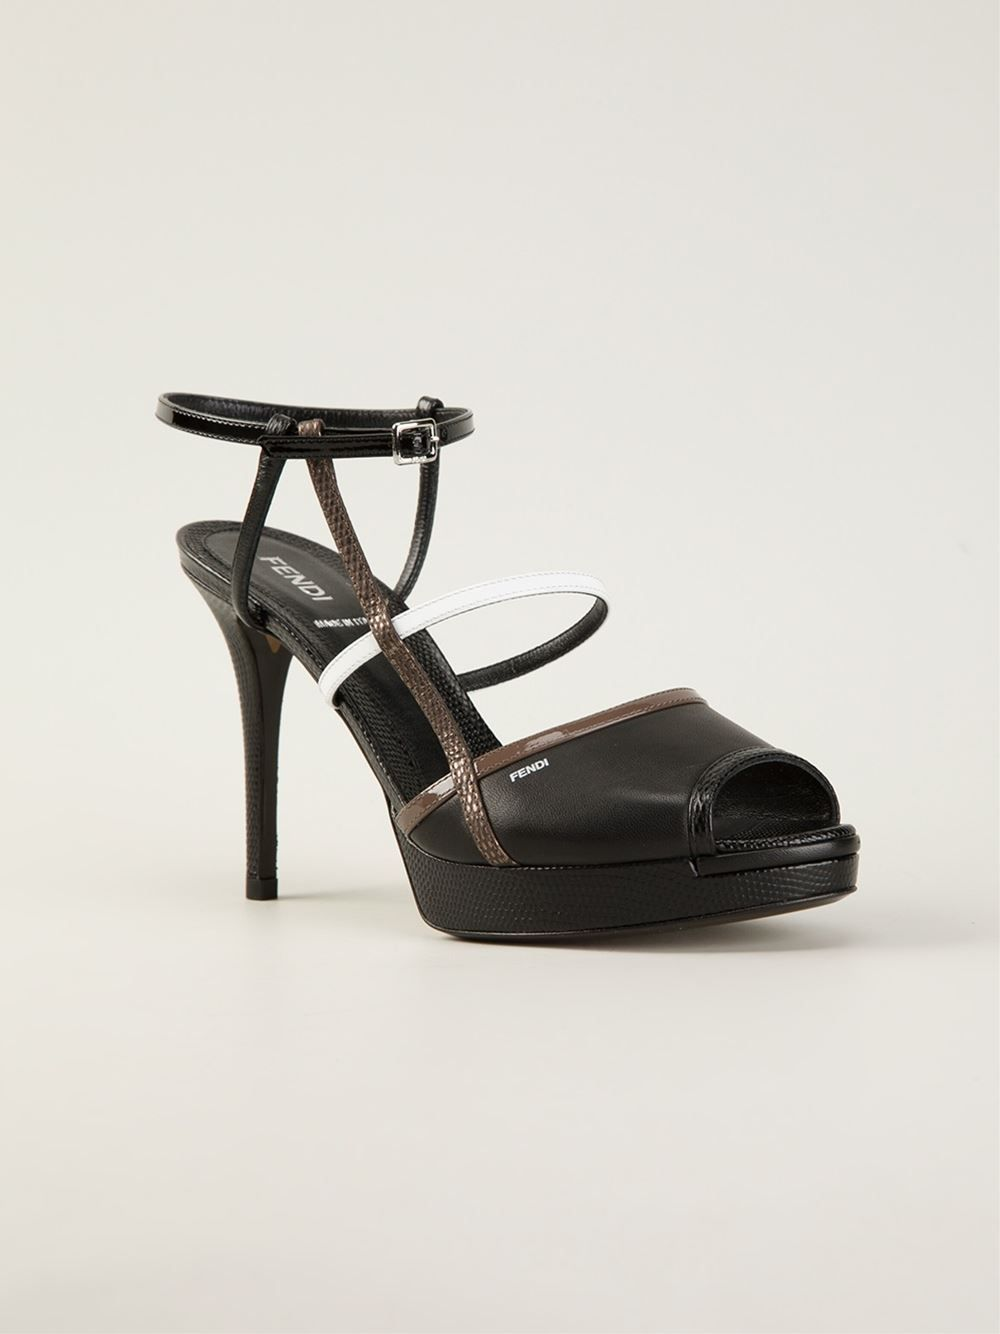 e546e37eb81 Shop a great range of women s designer sandals at Farfetch. From wedge to  gladiator